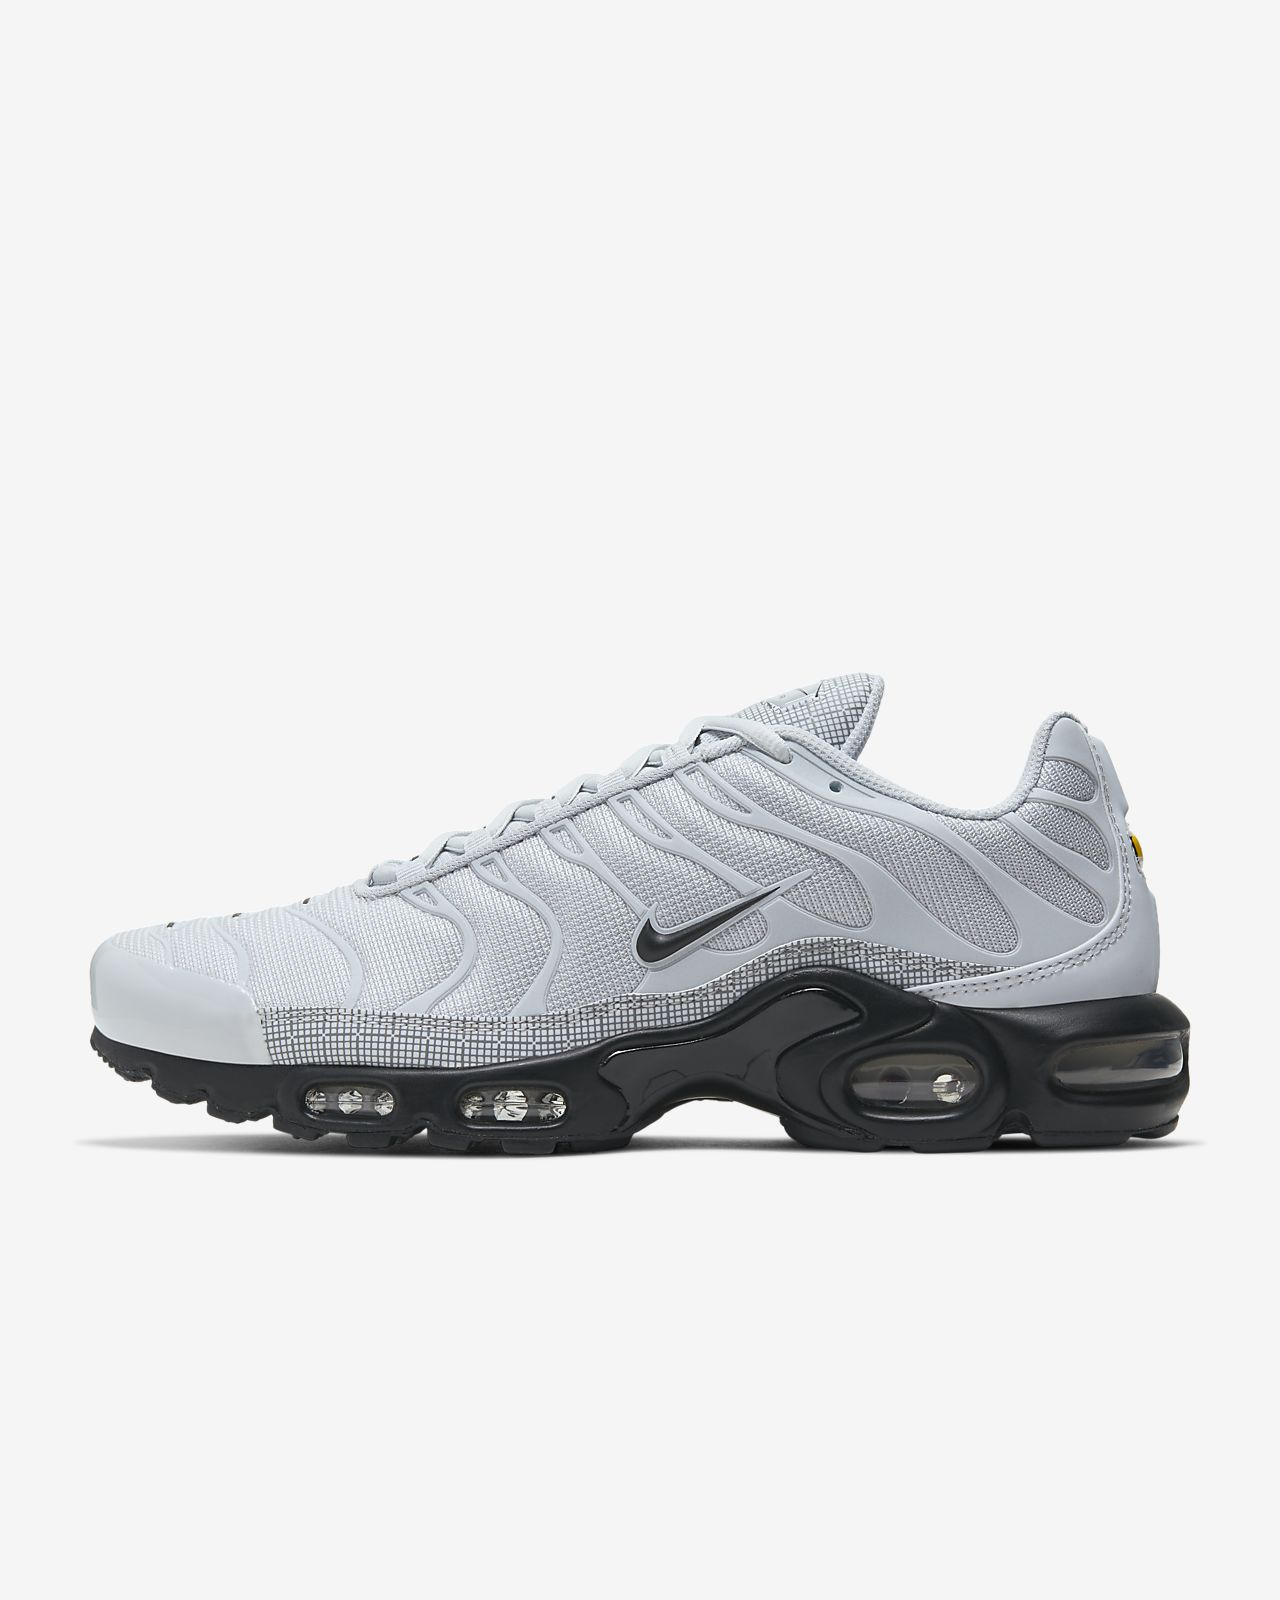 The Nike Air Max Trainer 1 Iconic Style for Every Workout